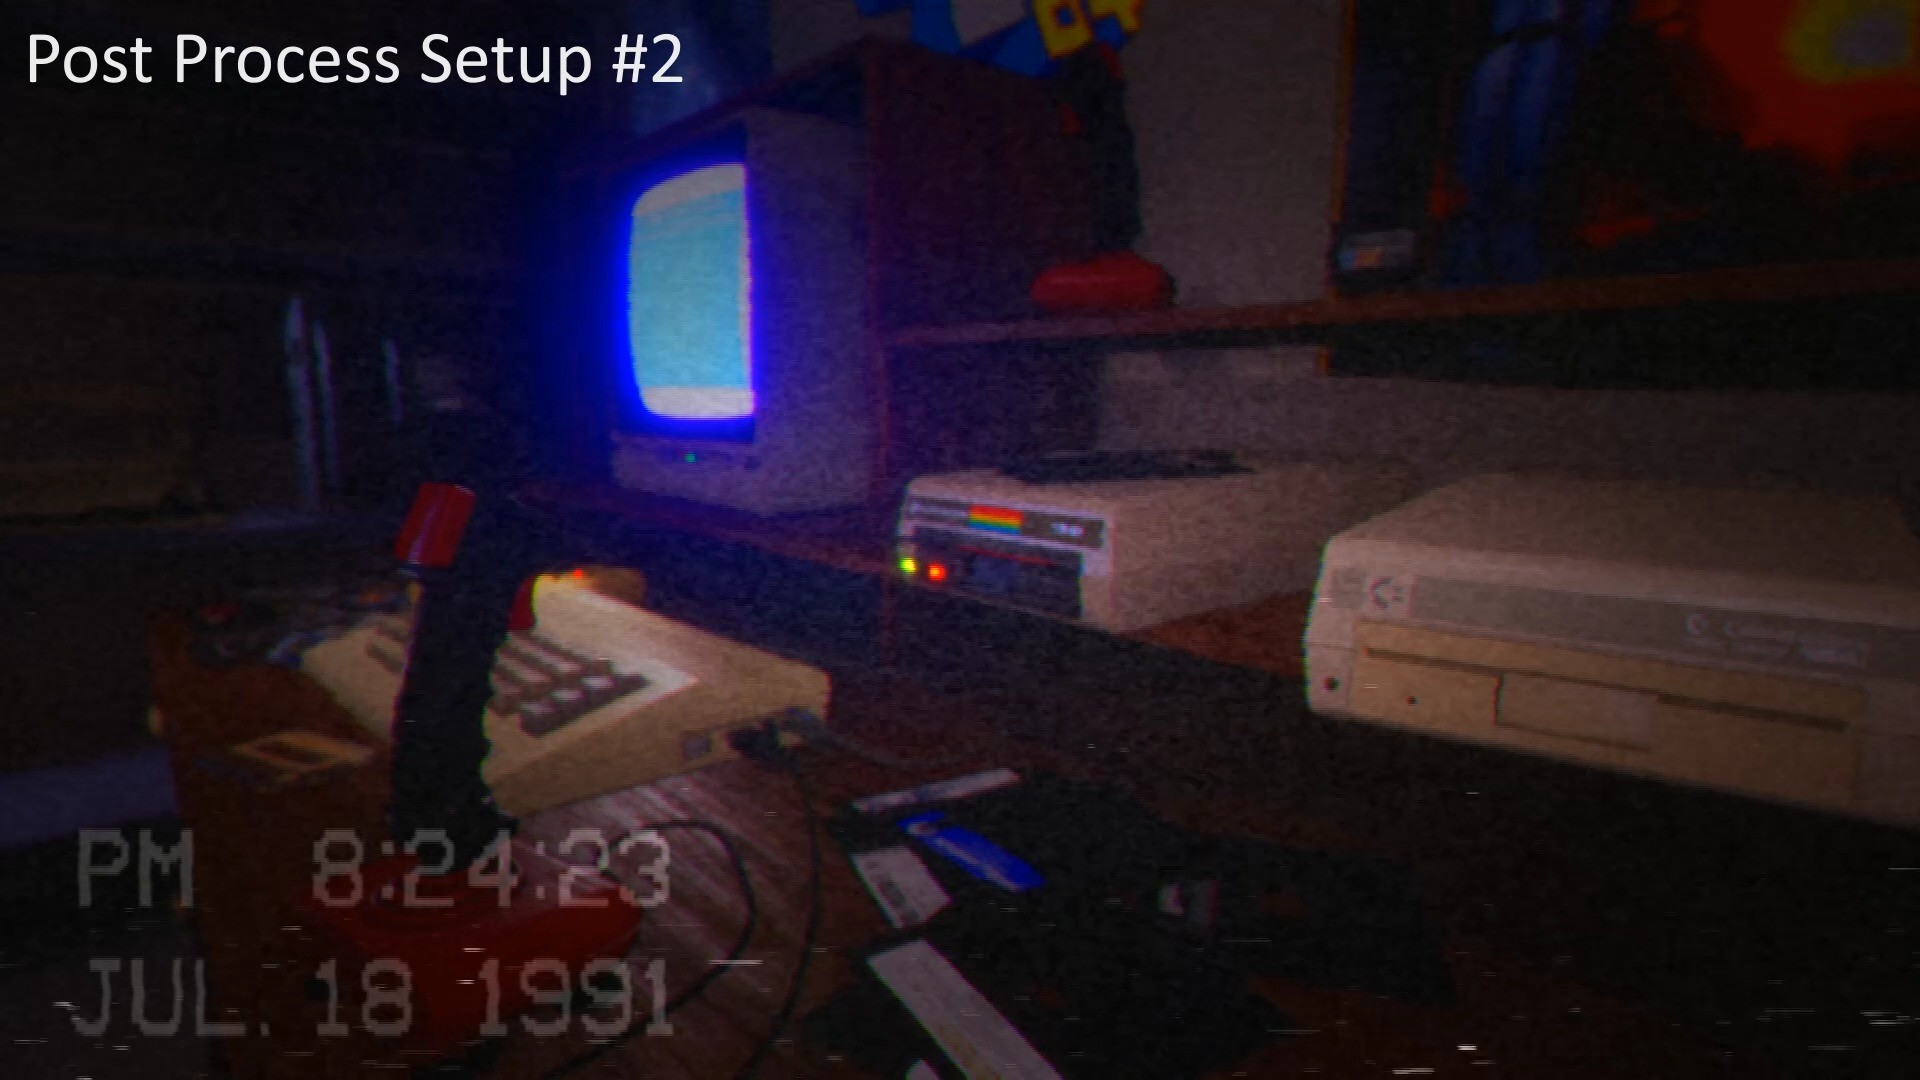 ArtStation - Animated CRT TV & VCR (VHS) Effects (Unreal Engine